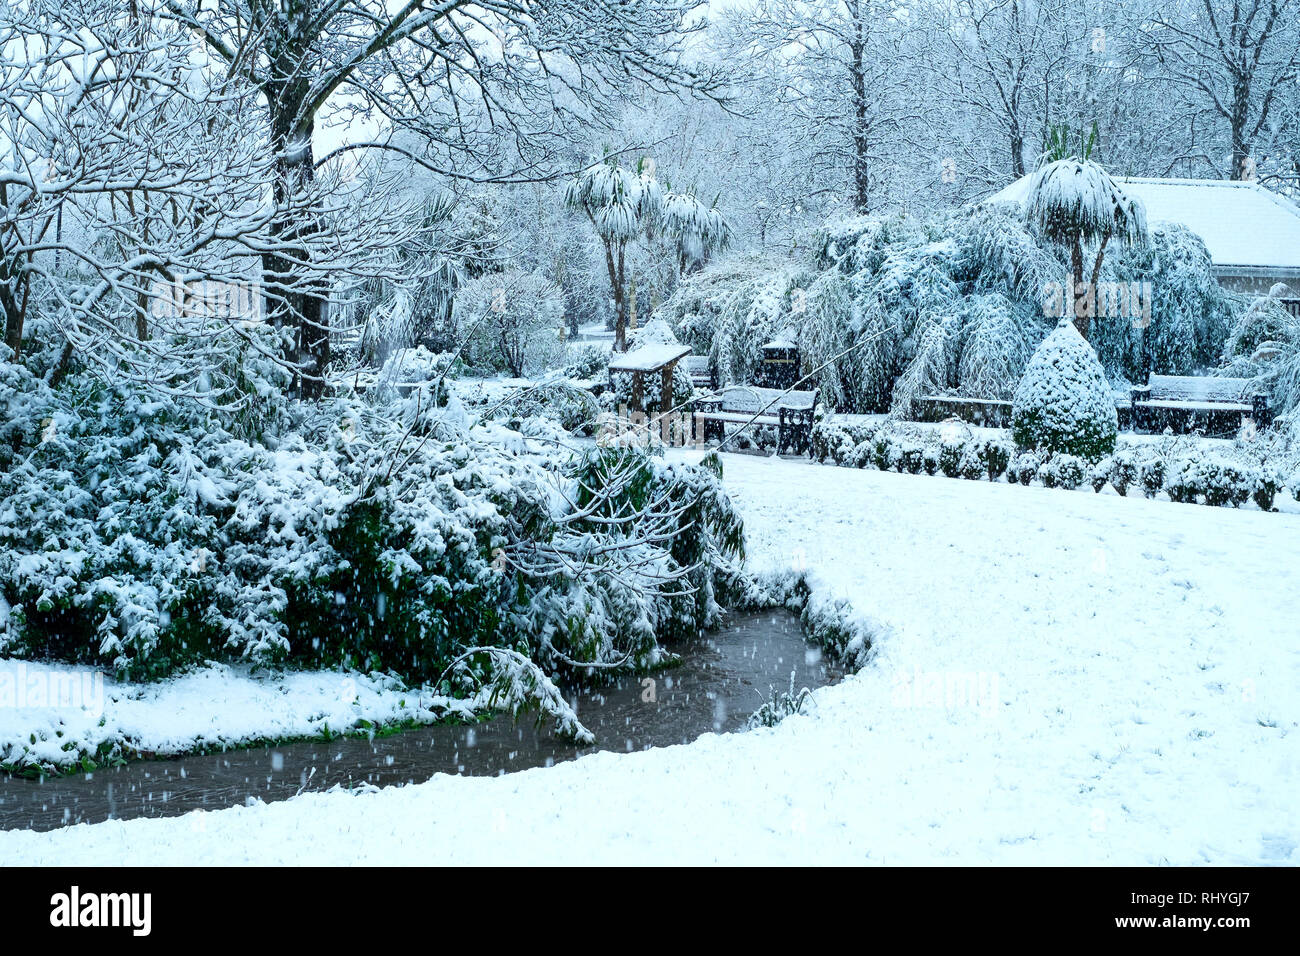 Trenance Gardens in heavy snowfall in Newquay in Cornwall. - Stock Image